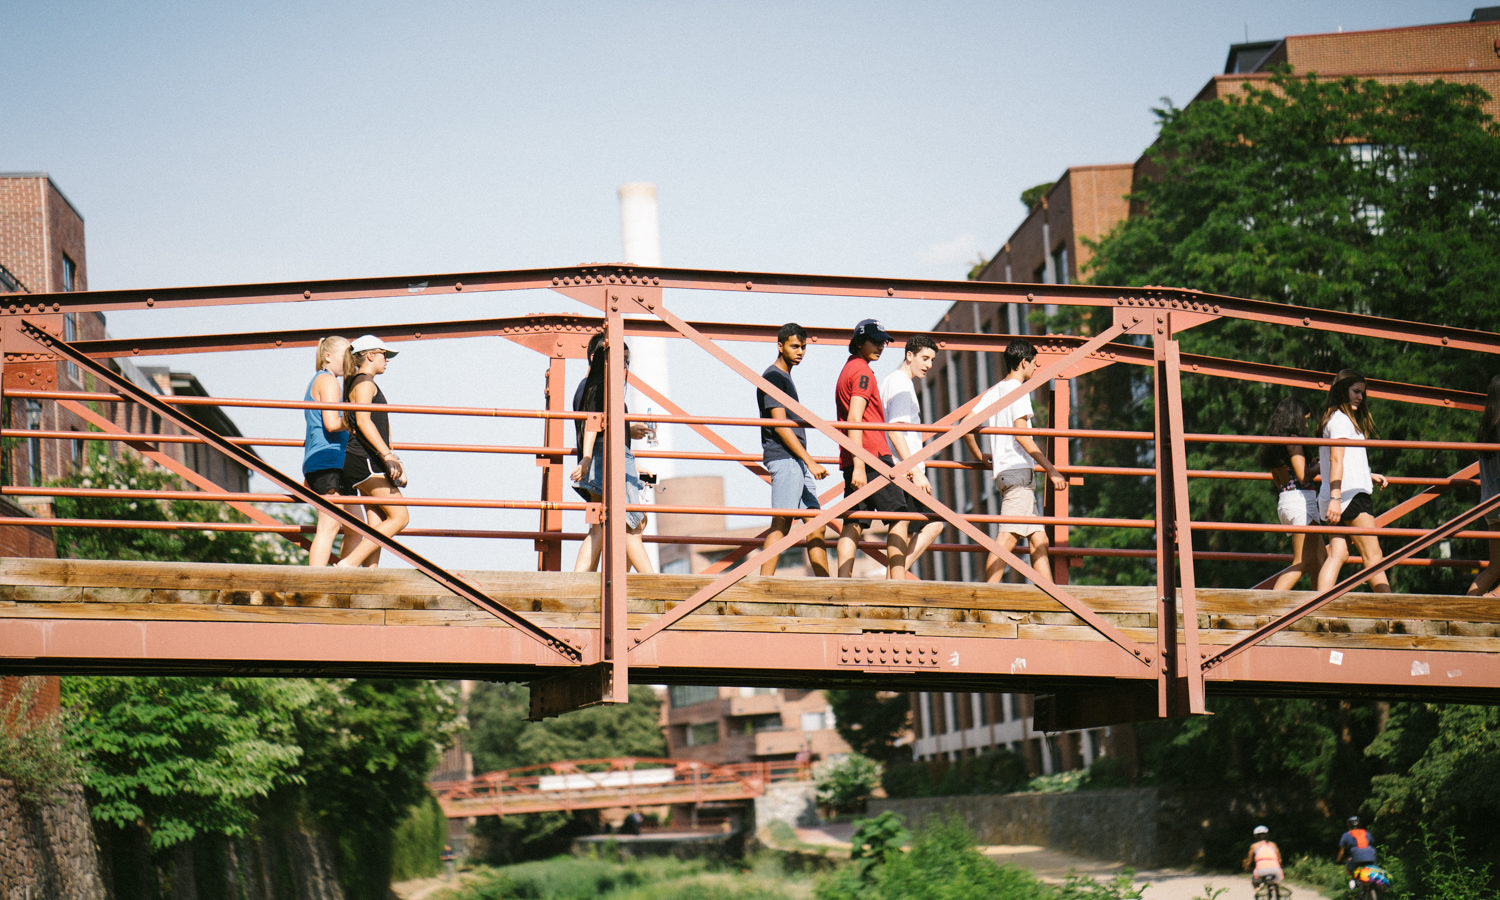 People are seen crossing a bridge over the Georgetown canal.